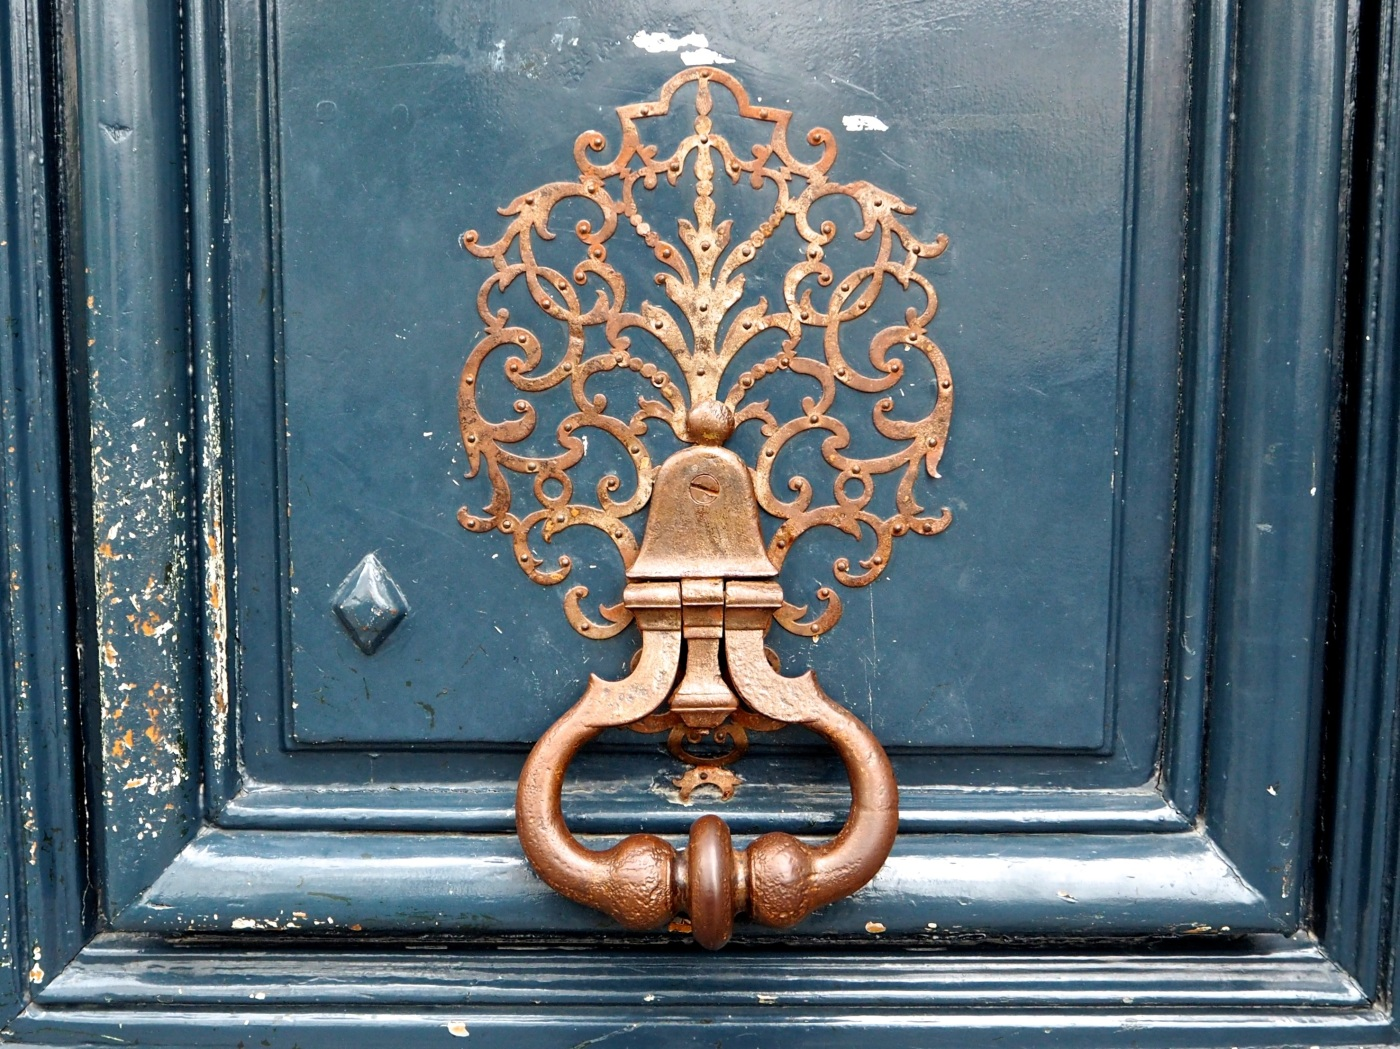 How To Replace A Door Sill Of These Door Knockers That First Caught My Eye '�